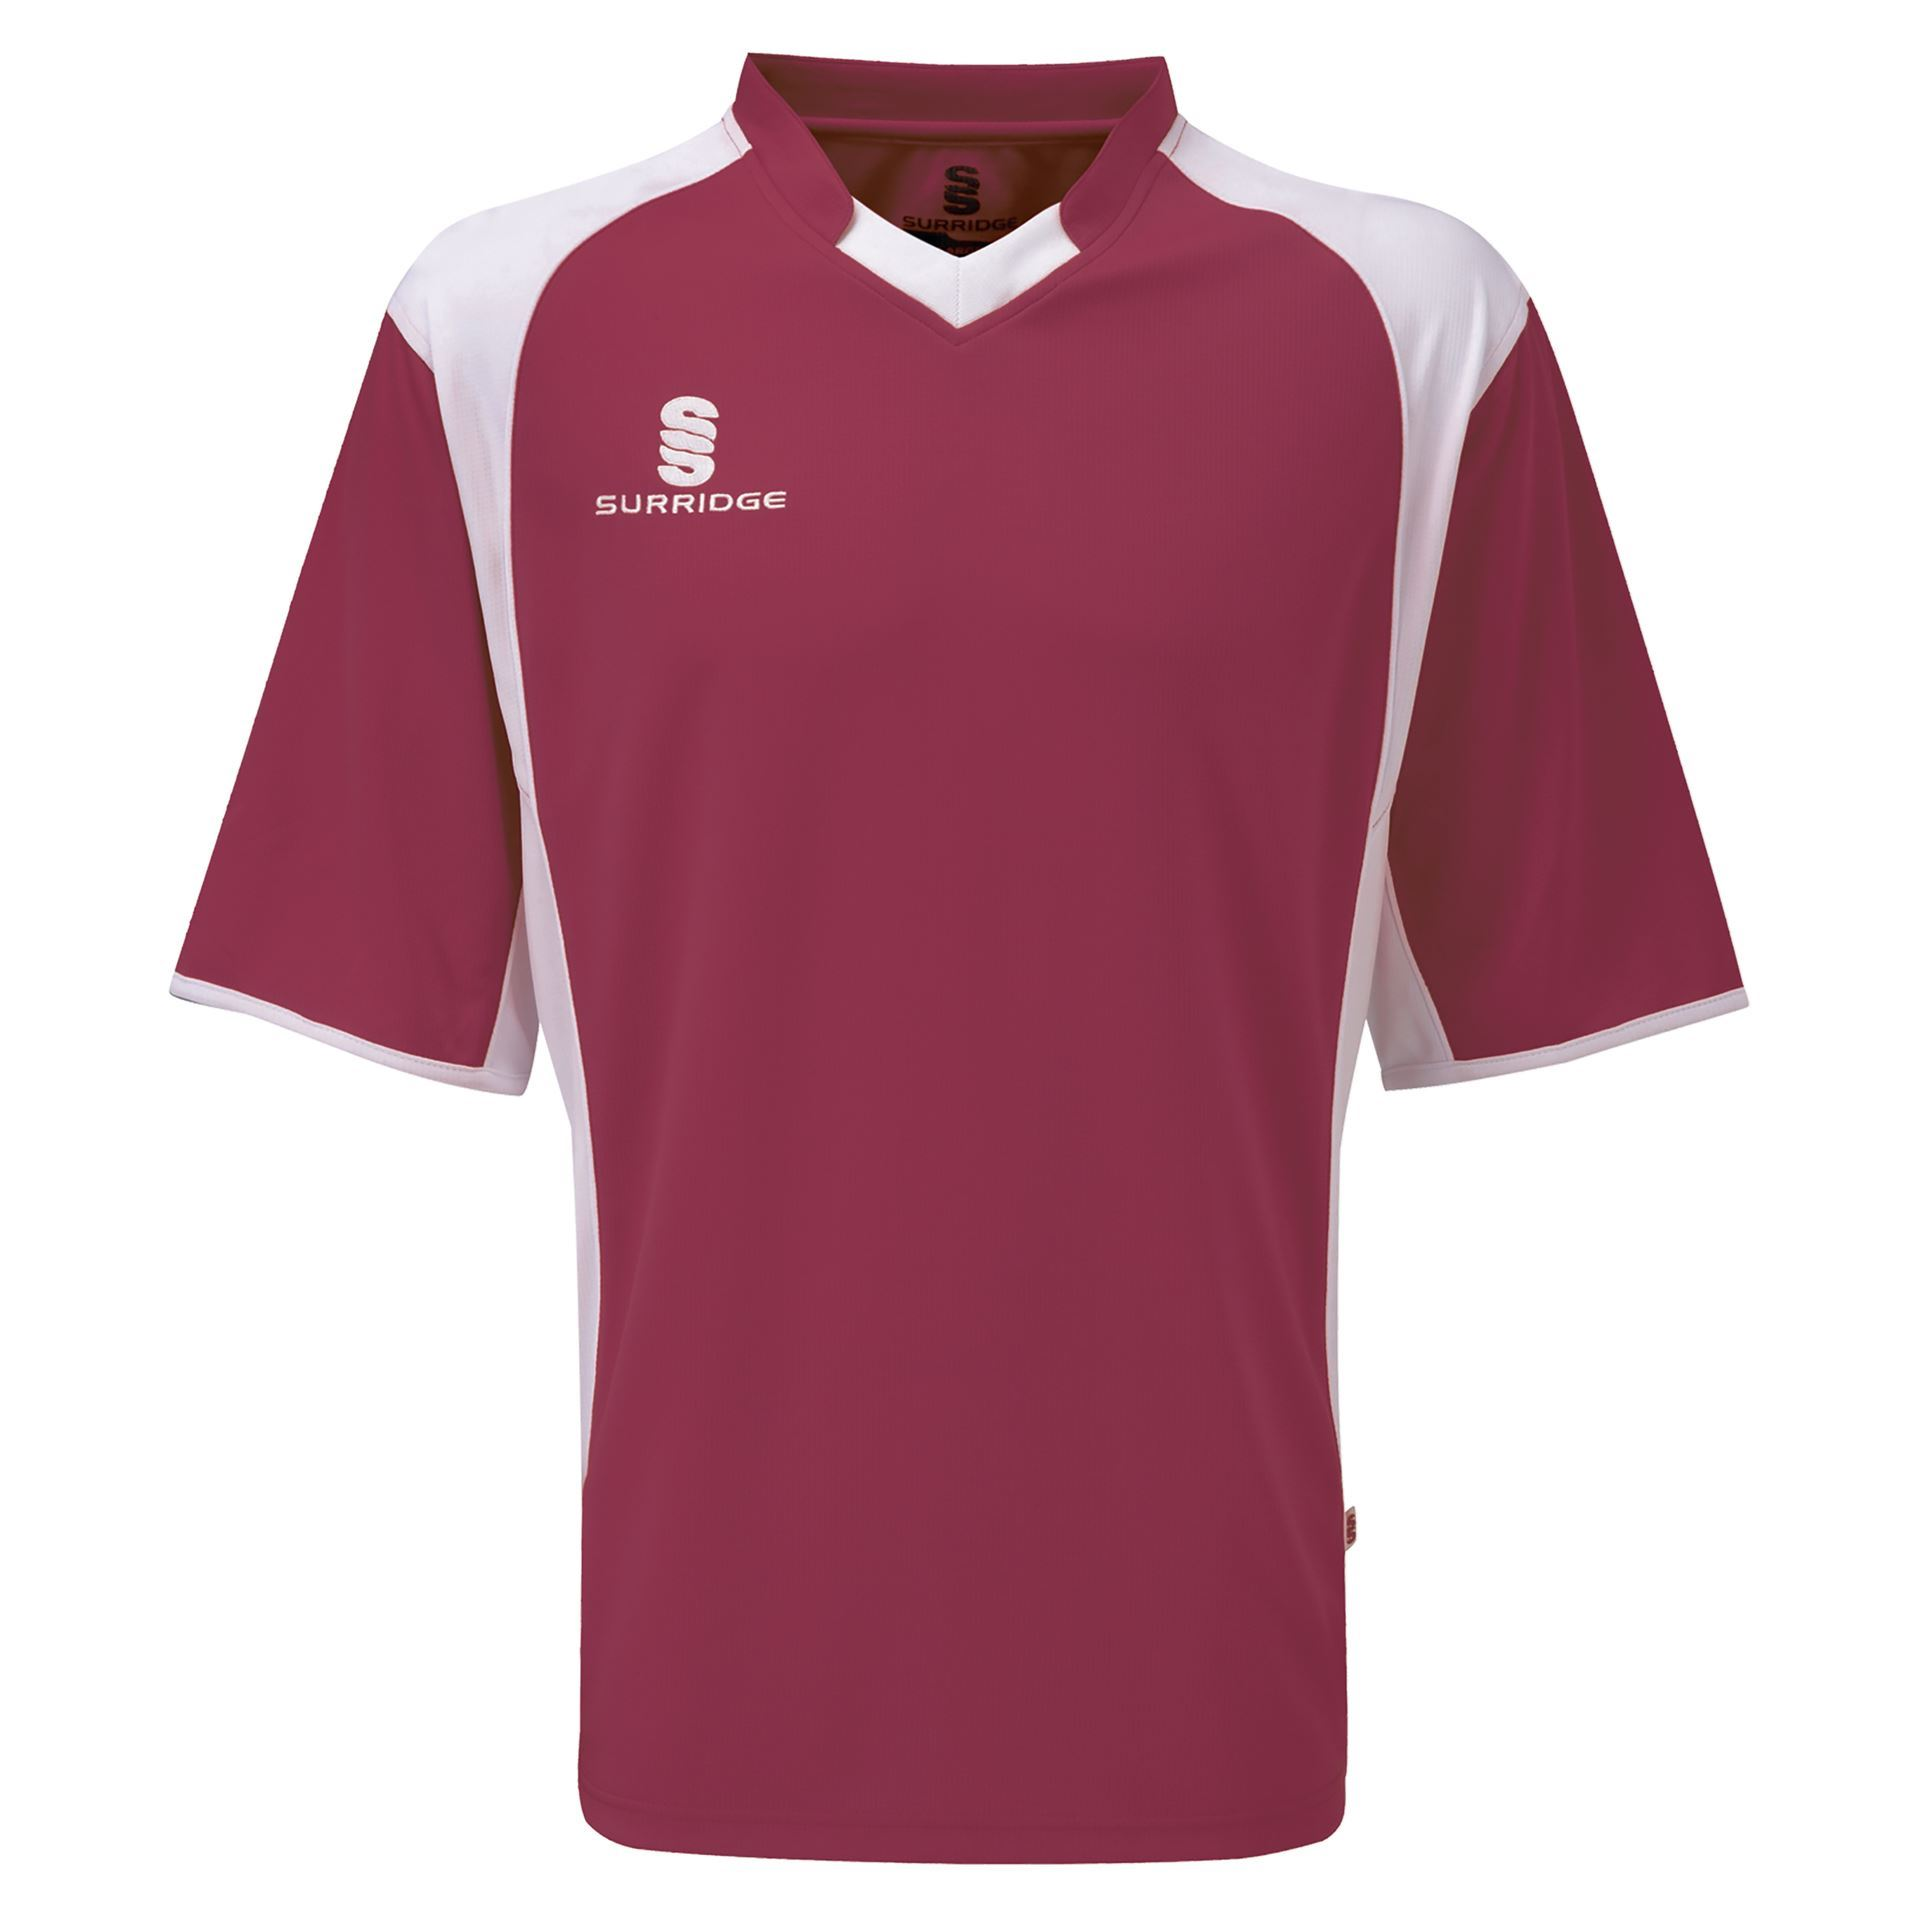 Surridge Sport - Training T-Shirt - Maroon/White